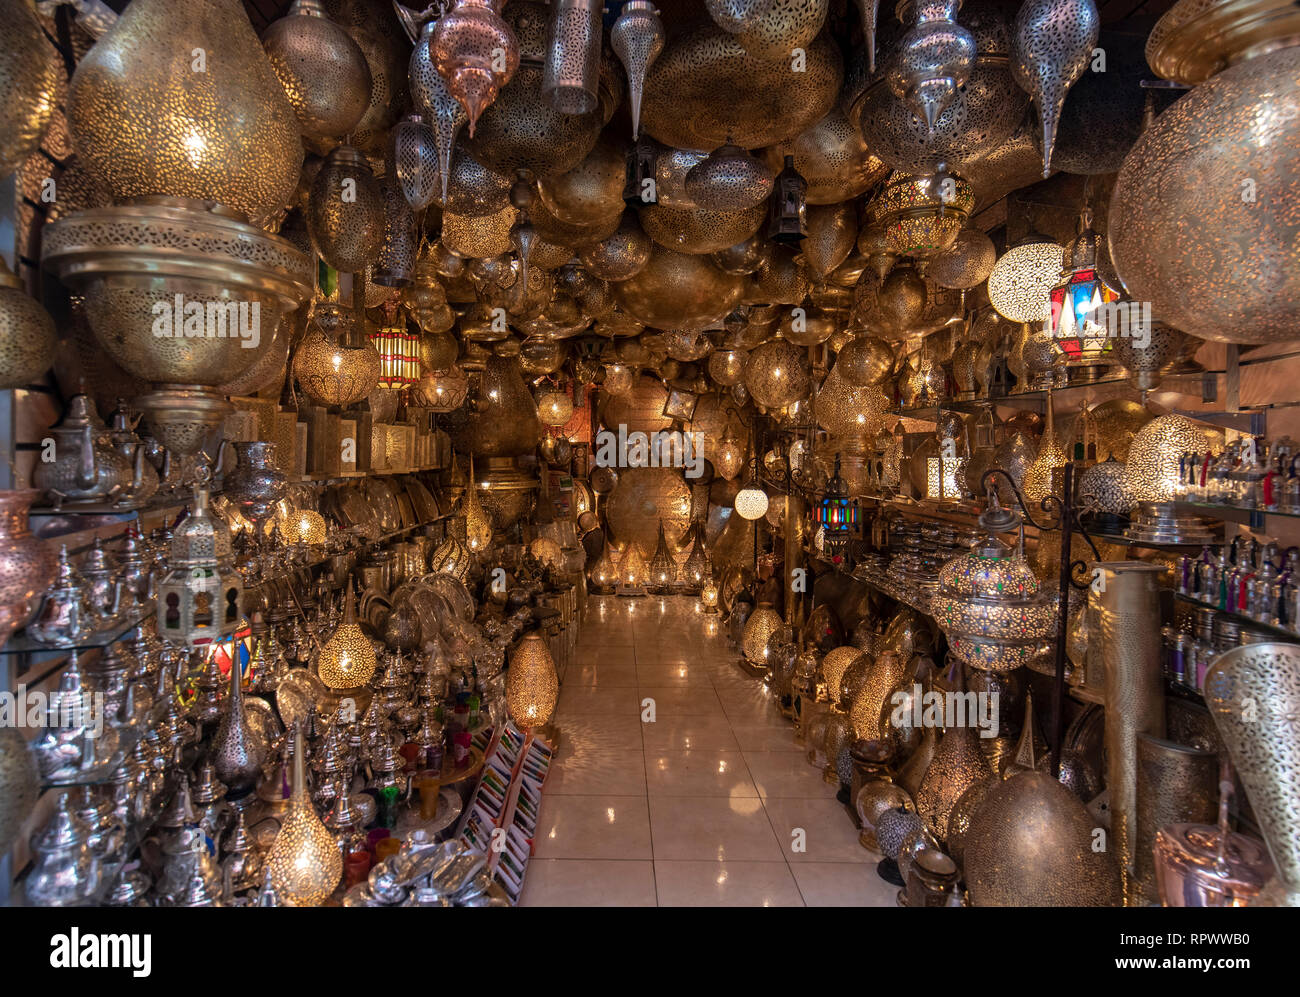 Antique Moroccan Lanterns High Resolution Stock Photography And Images Alamy